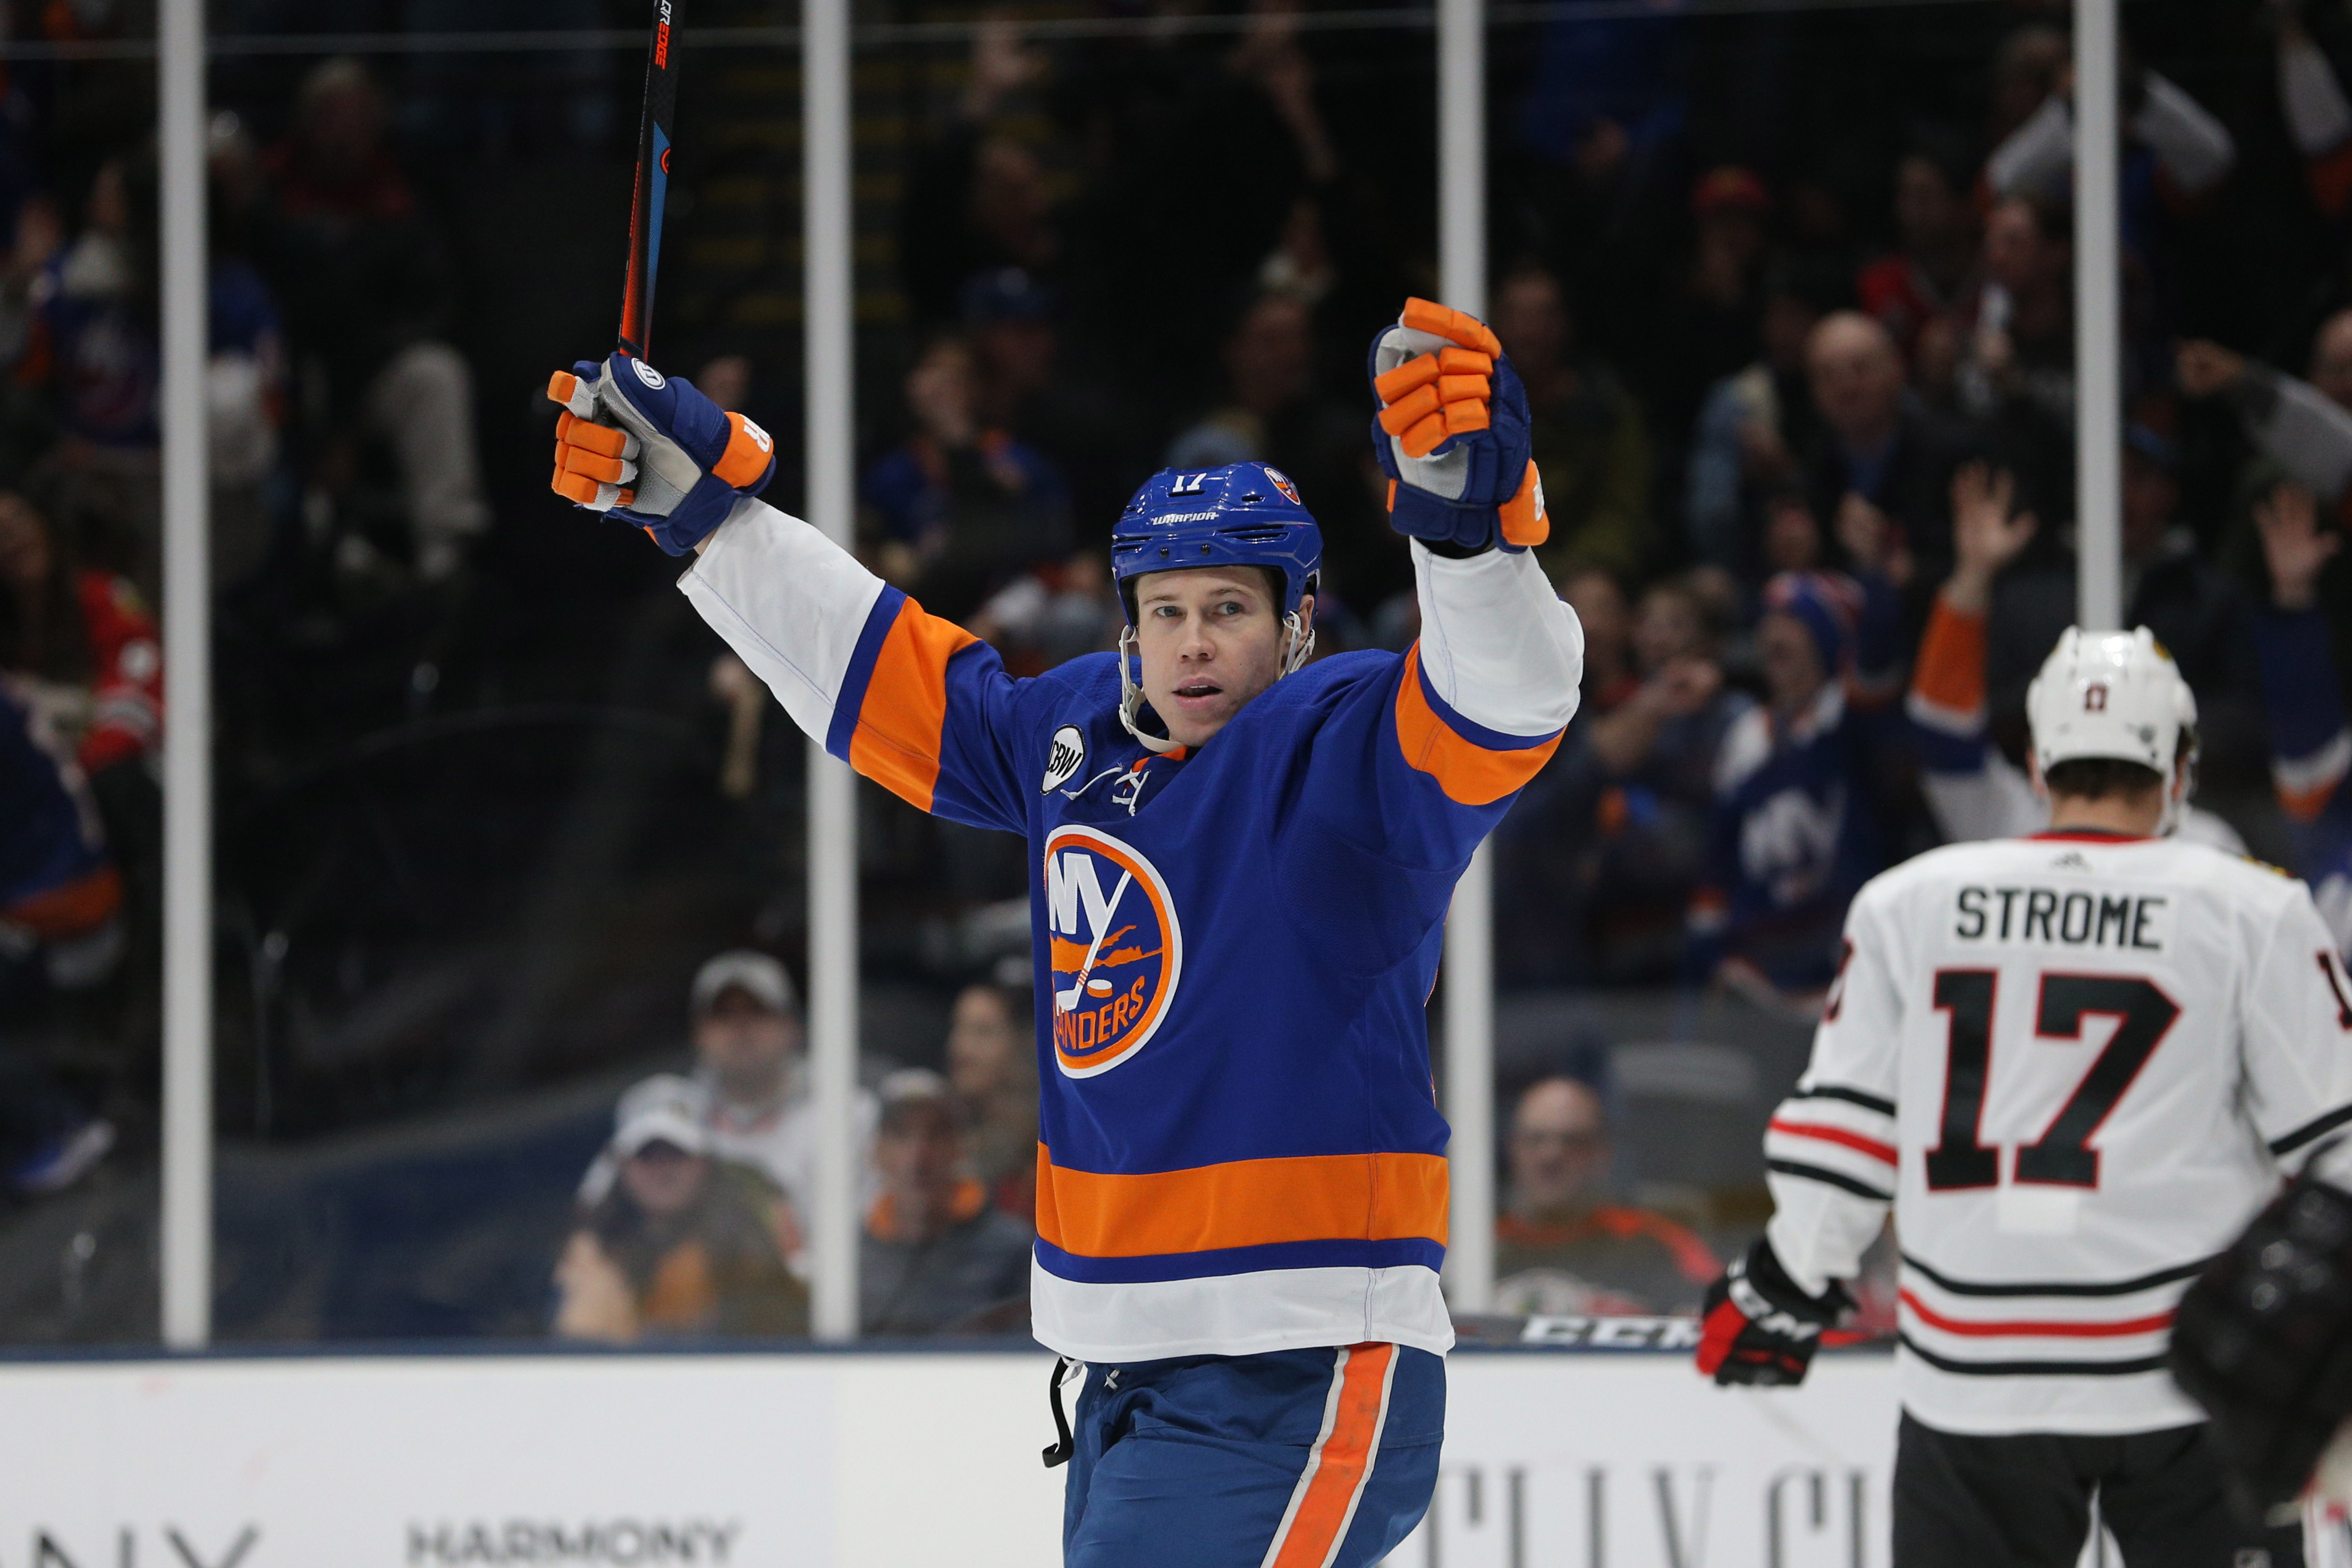 Jan 3, 2019; Uniondale, NY, USA; New York Islanders left wing Matt Martin (17) celebrates a goal by New York Islanders right wing Cal Clutterbuck (not pictured) against the Chicago Blackhawks during the second period at Nassau Veterans Memorial Coliseum. After review the goal was reversed for a high stick. Mandatory Credit: Brad Penner-USA TODAY Sports